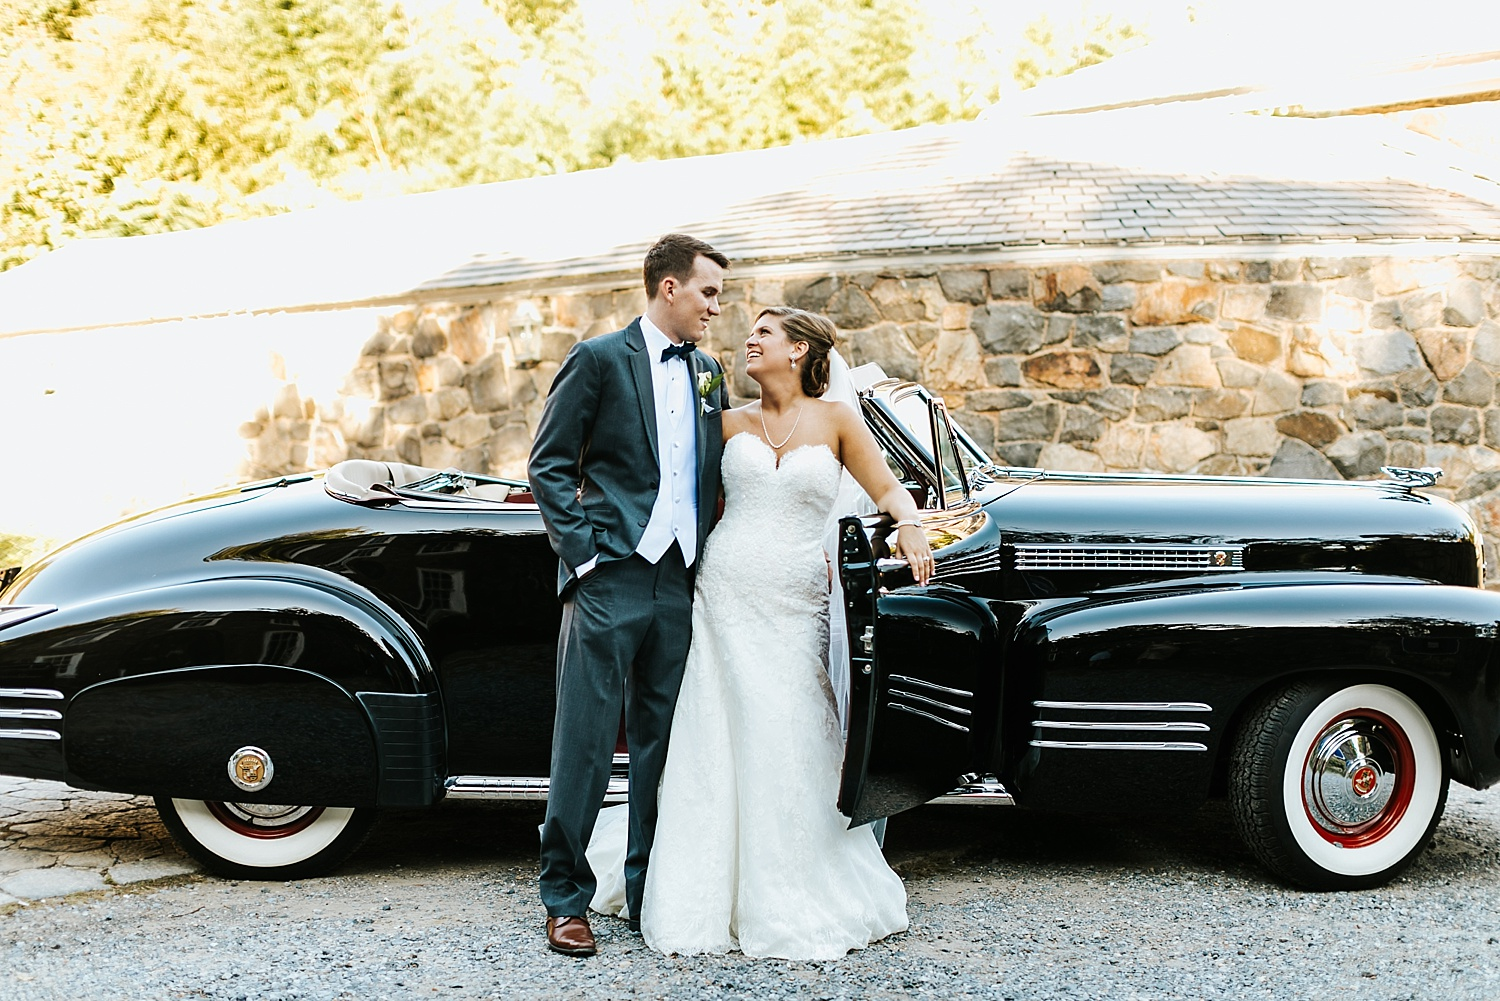 Bride and groom looking at each other in front of a vintage car